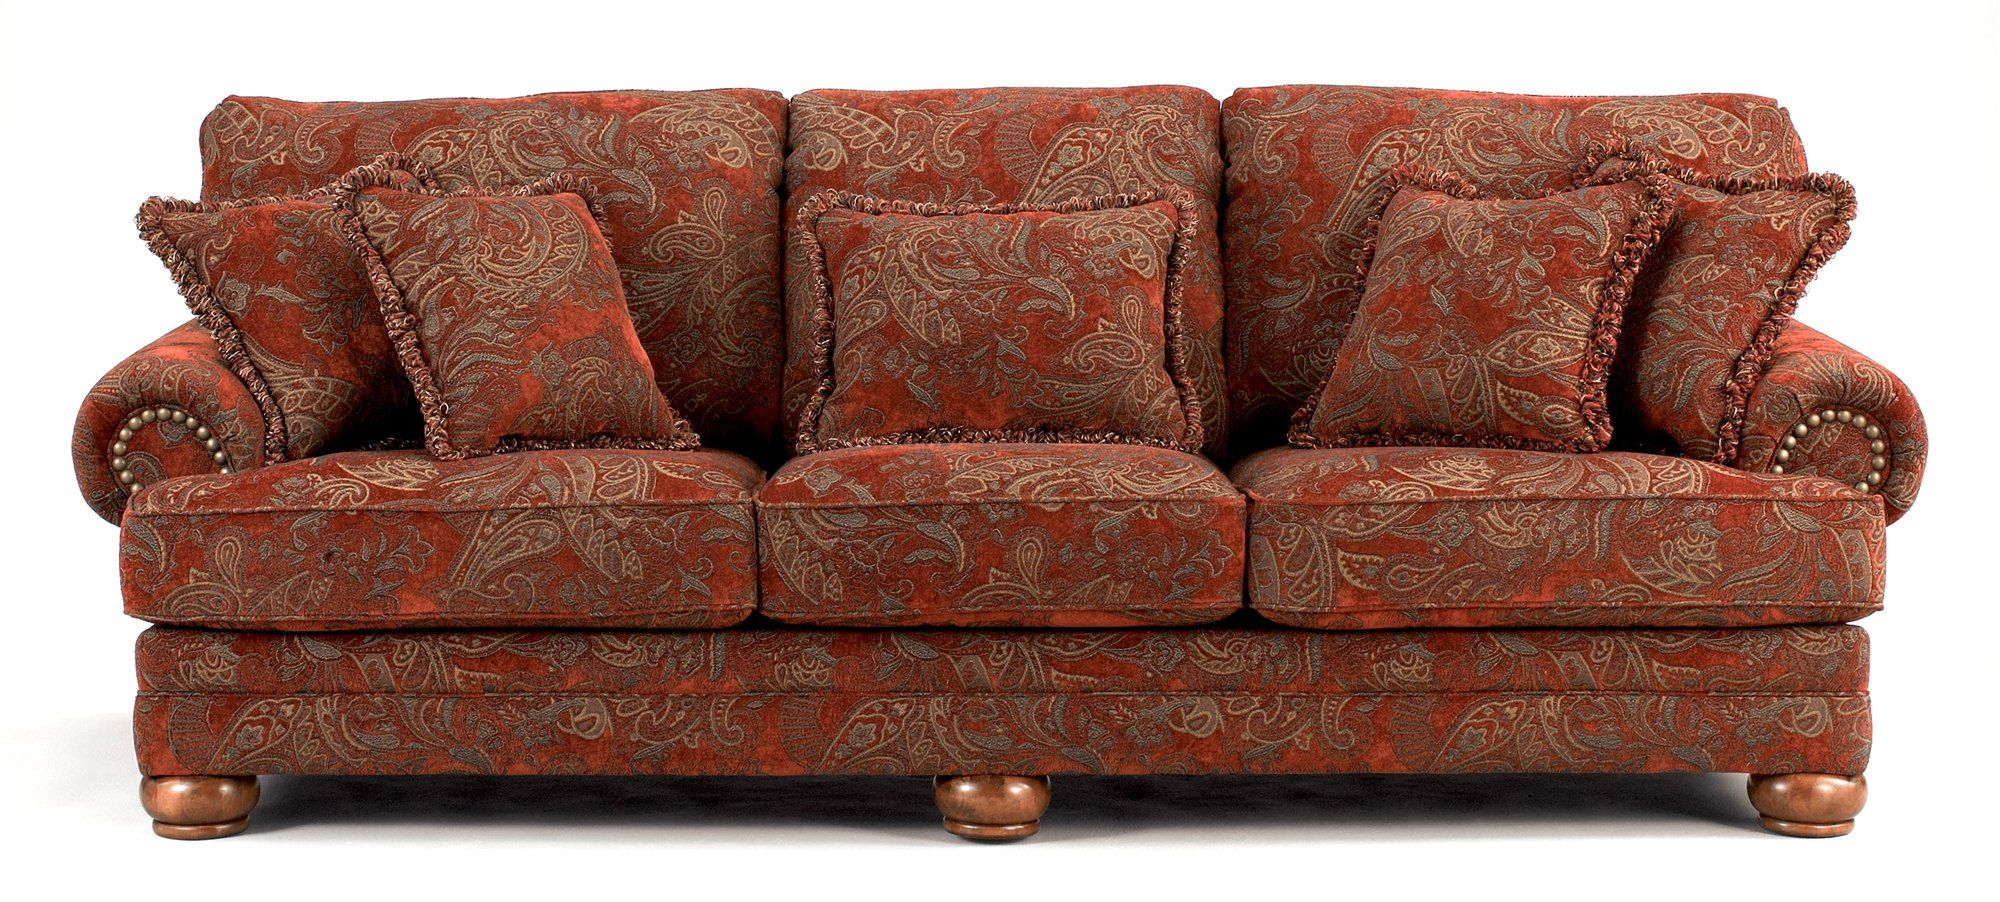 Buy Low Price Ivgstores Furniture Traditional Sofa W Sienna Paisley Upholstery Ash 99622 Paisley Upholstery Traditional Sofa Paisley Sofa Paisley couch living room furniture